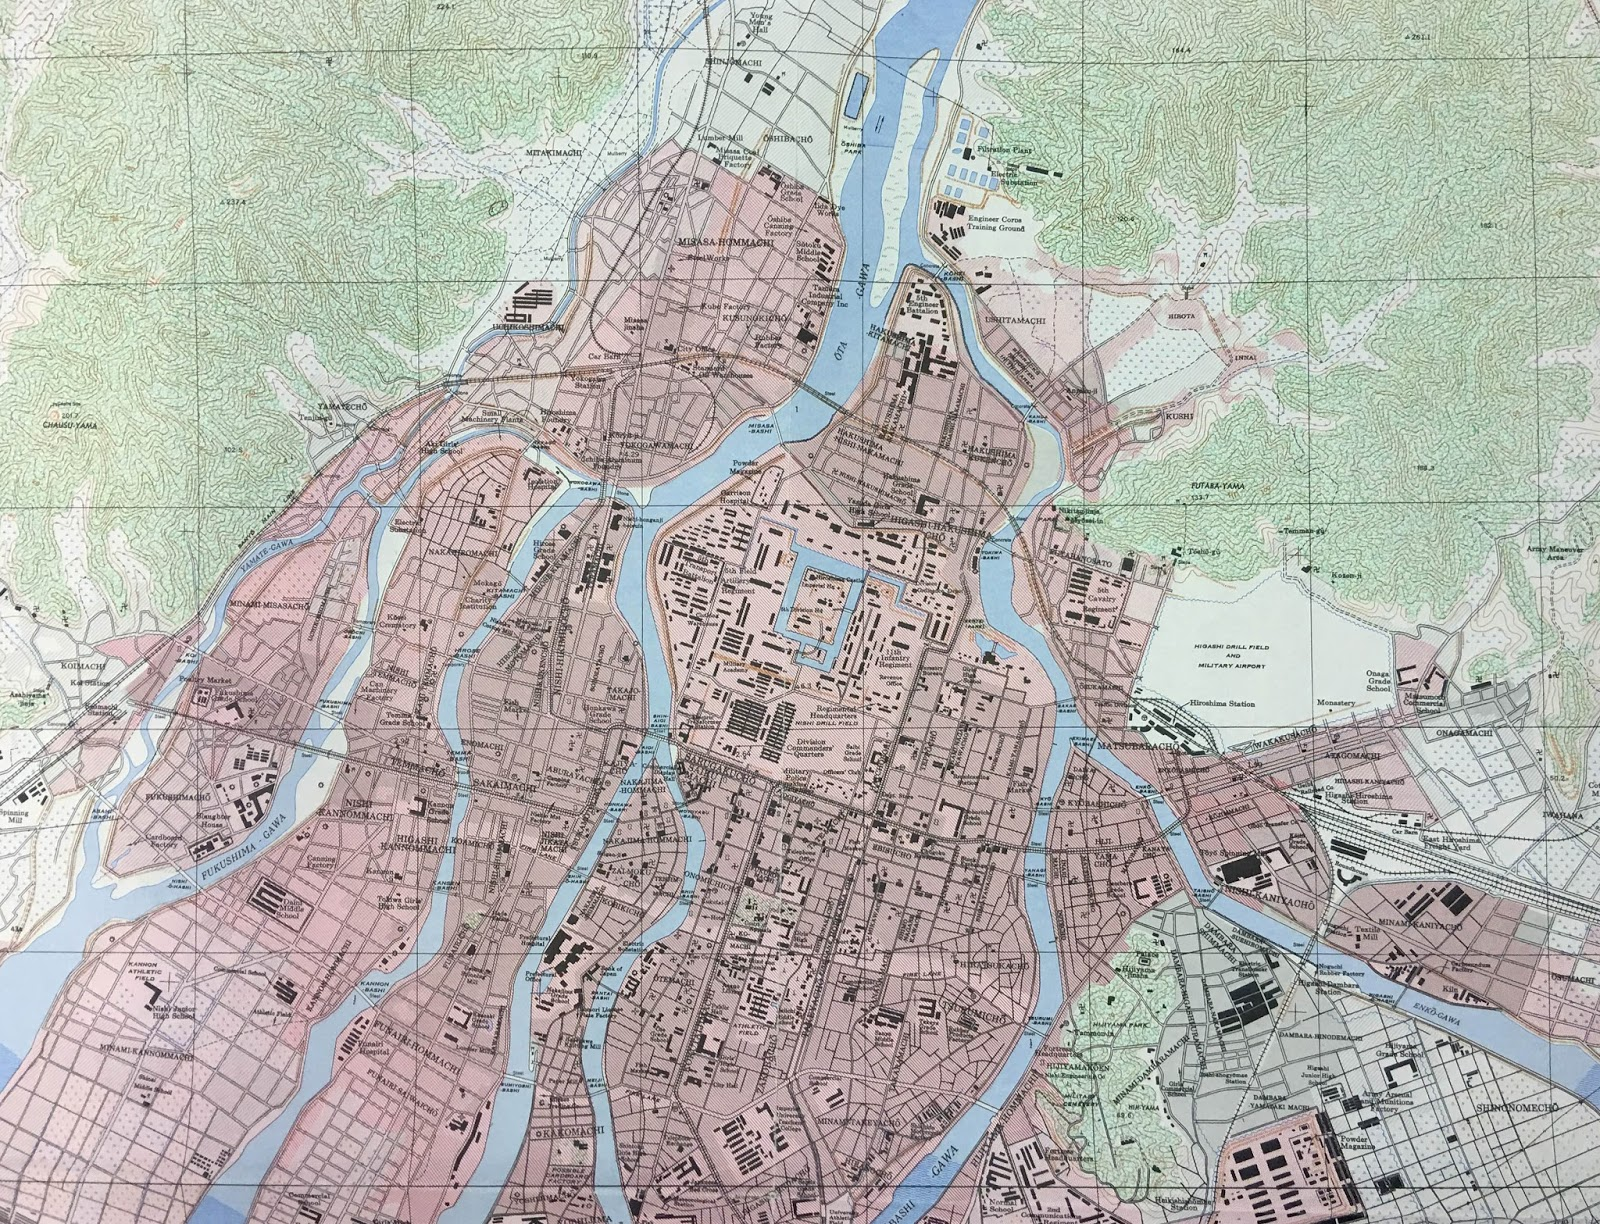 hiroshima maps available from ball state university libraries